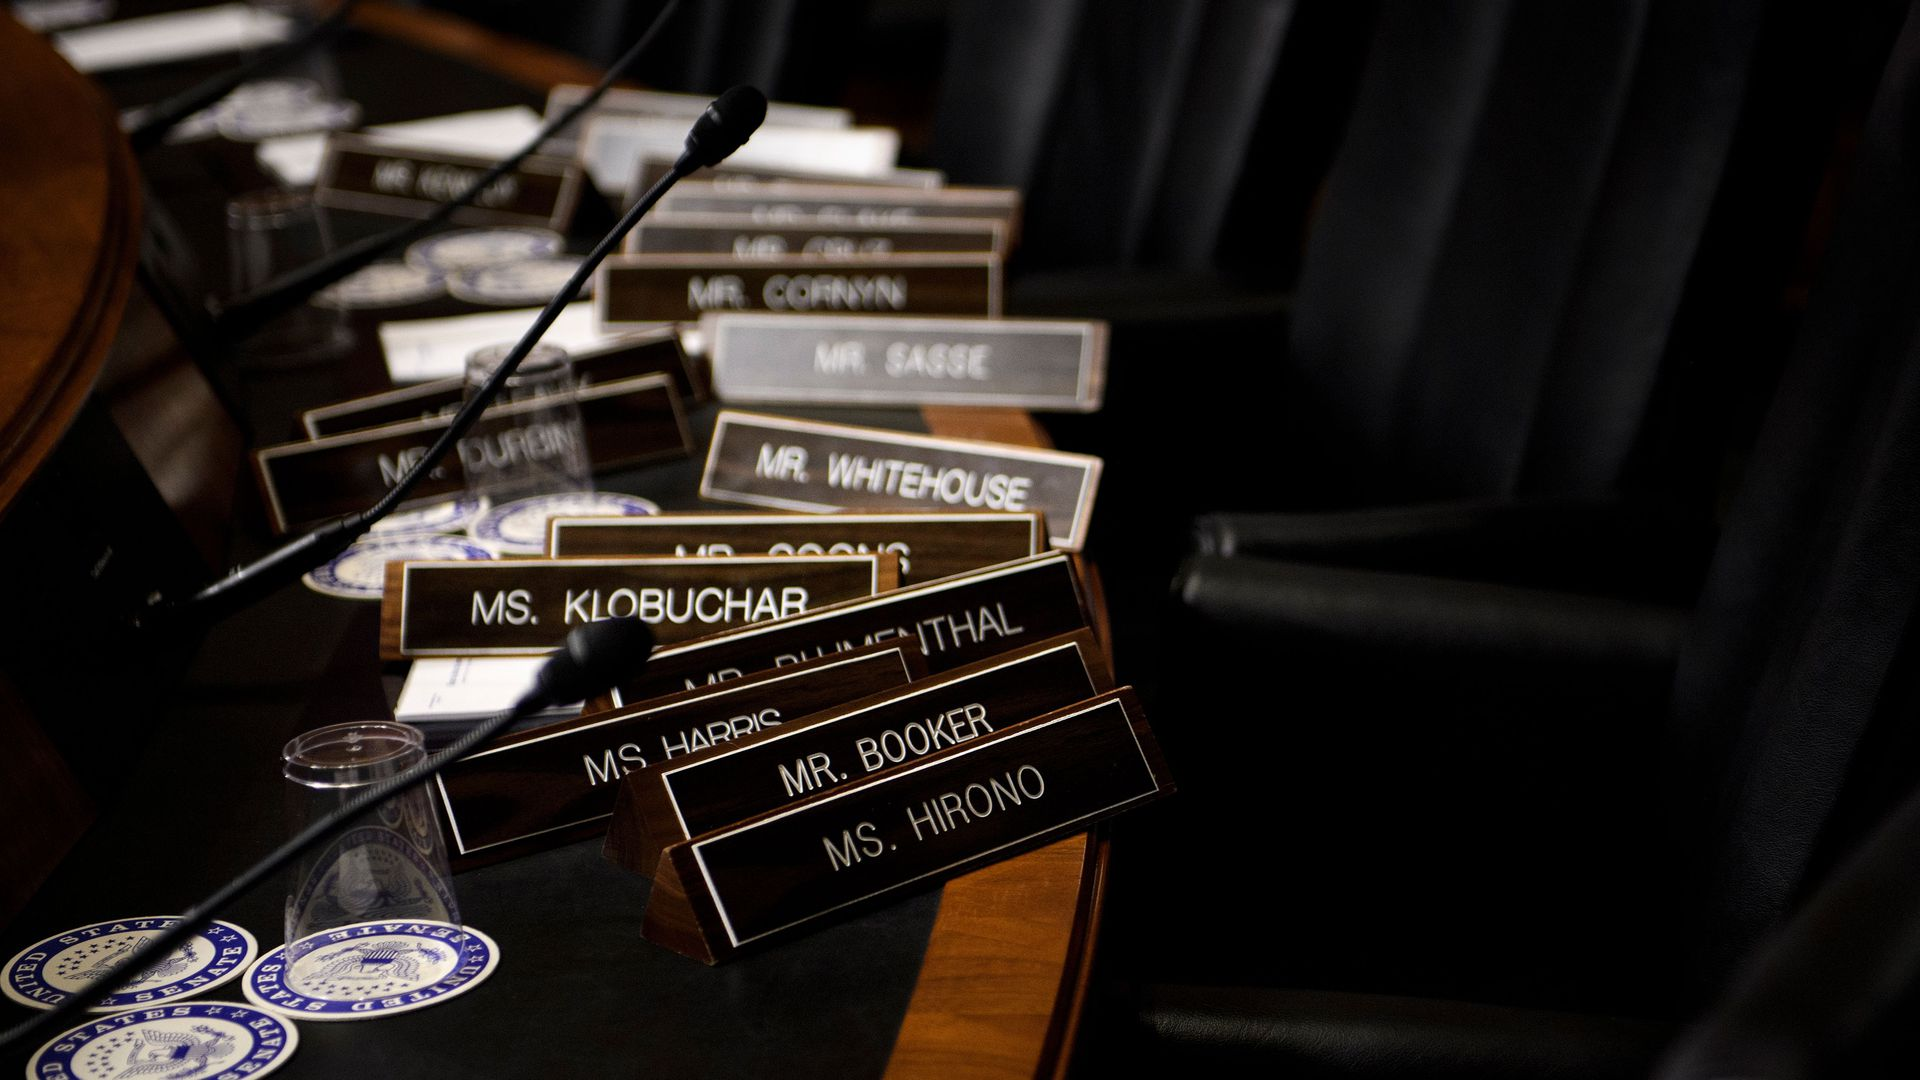 Name plates are seen as the Senate Judiciary Committee's room on Capitol Hill during preparations one day before the hearing with Blasey Ford and Supreme Court nominee Judge Brett Kavanaugh.